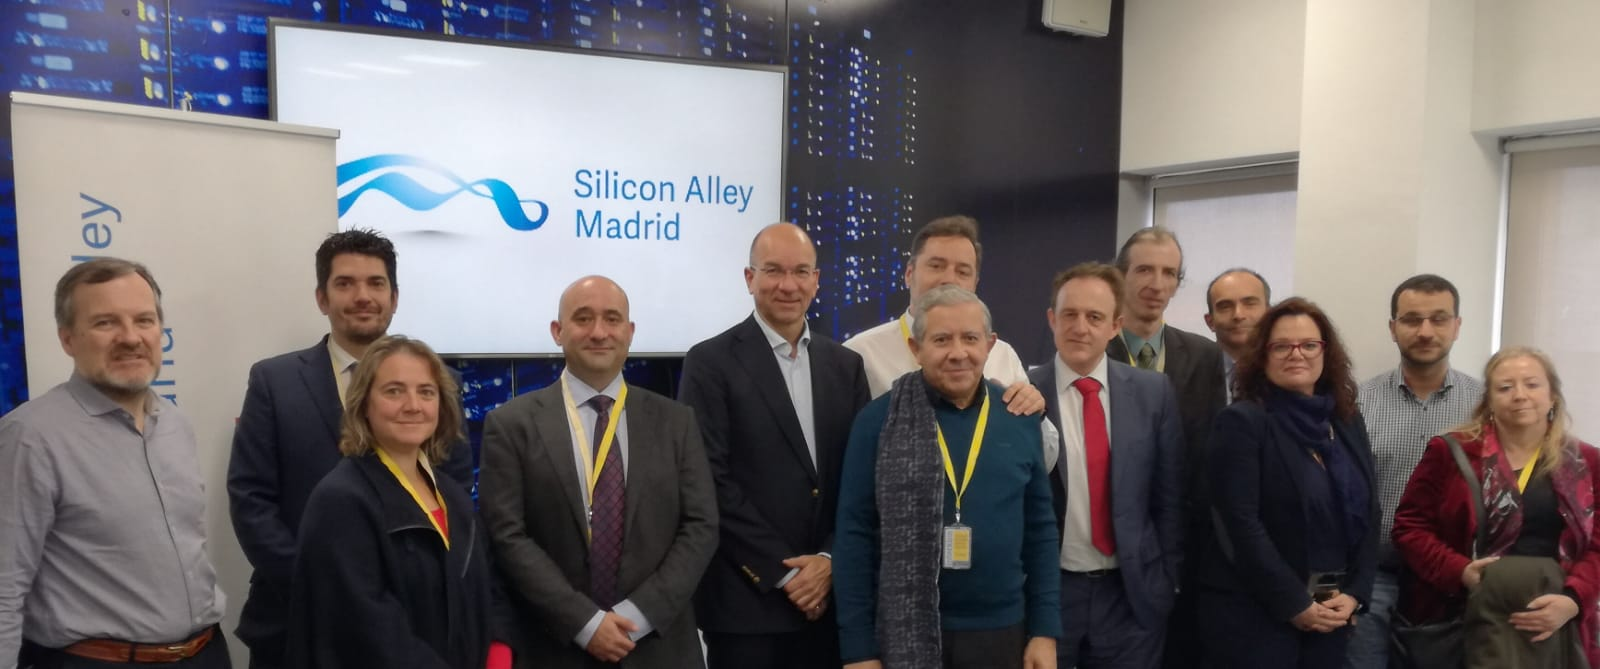 Silicon Alley Madrid - Asamblea Enero 2019